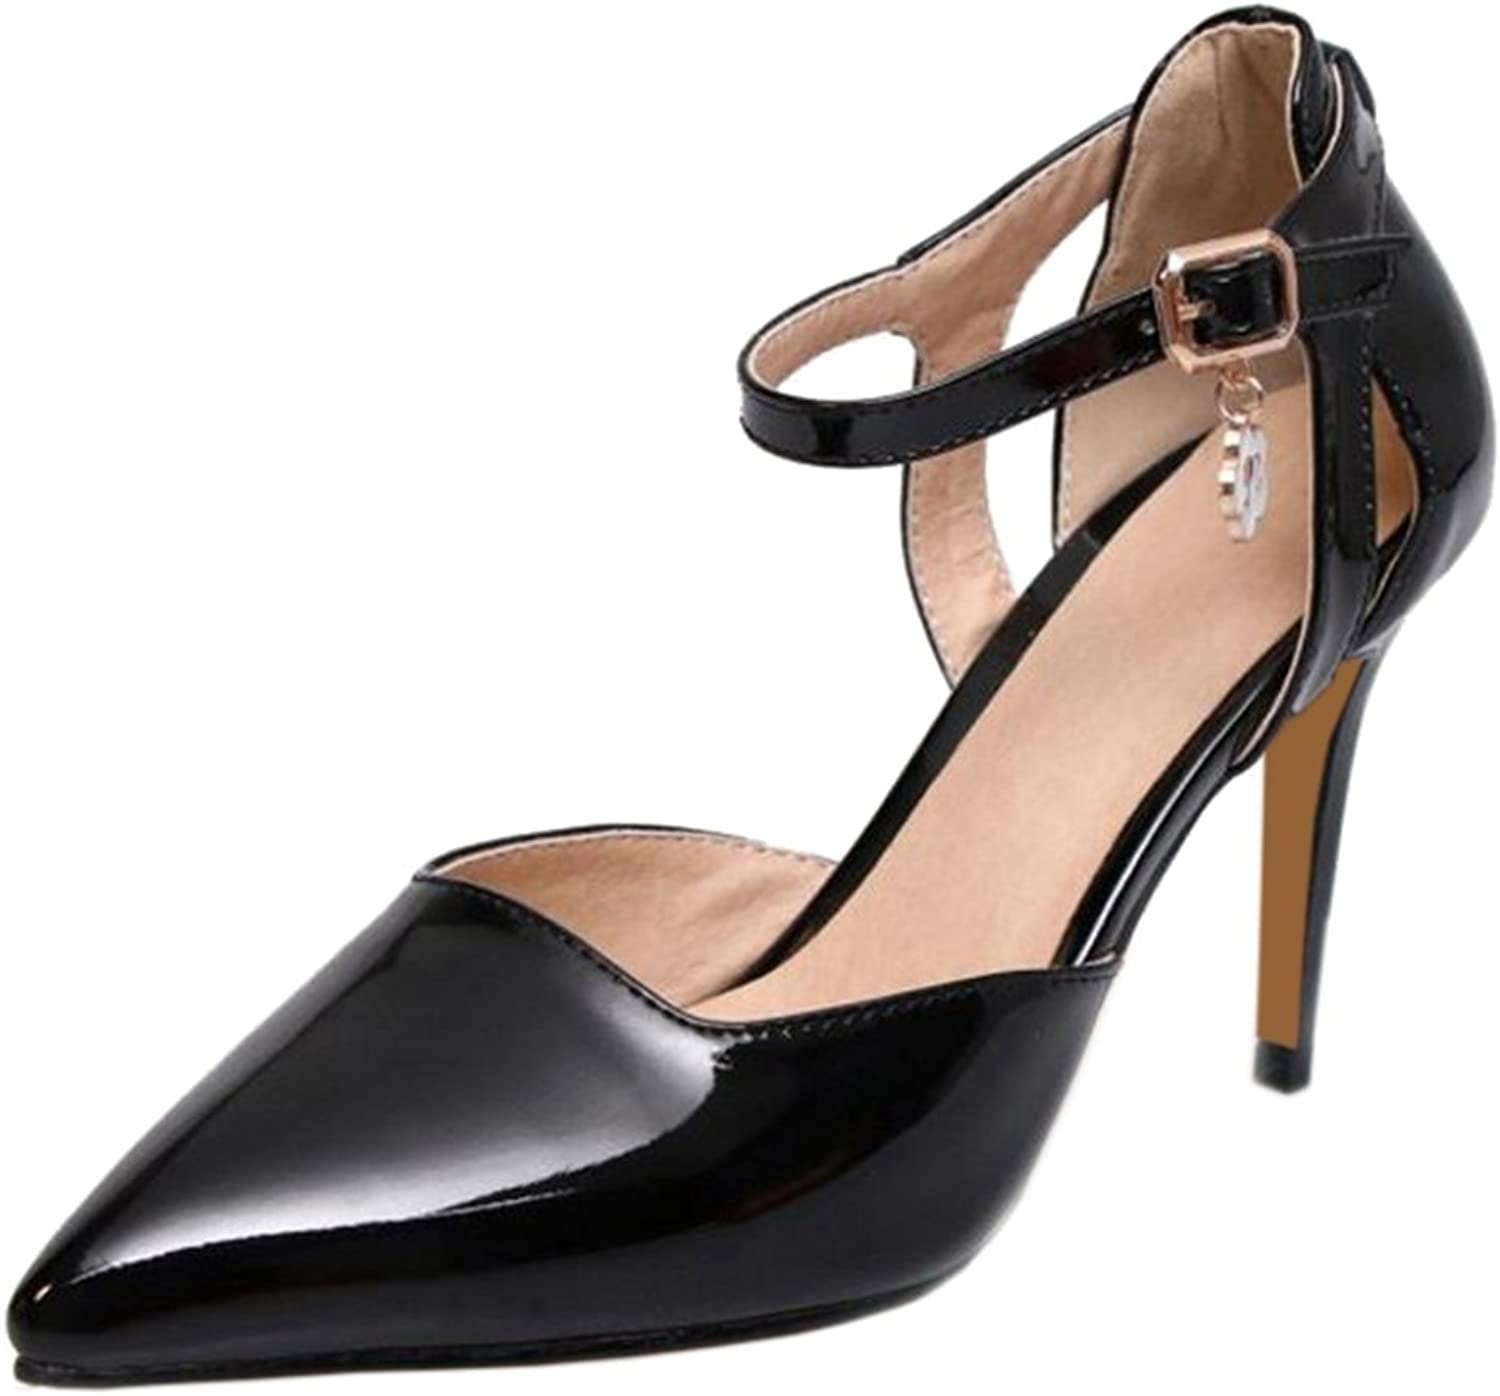 Cocey Women Elegant Sandals with Pointed Toe and Stiletto for Office Ladies